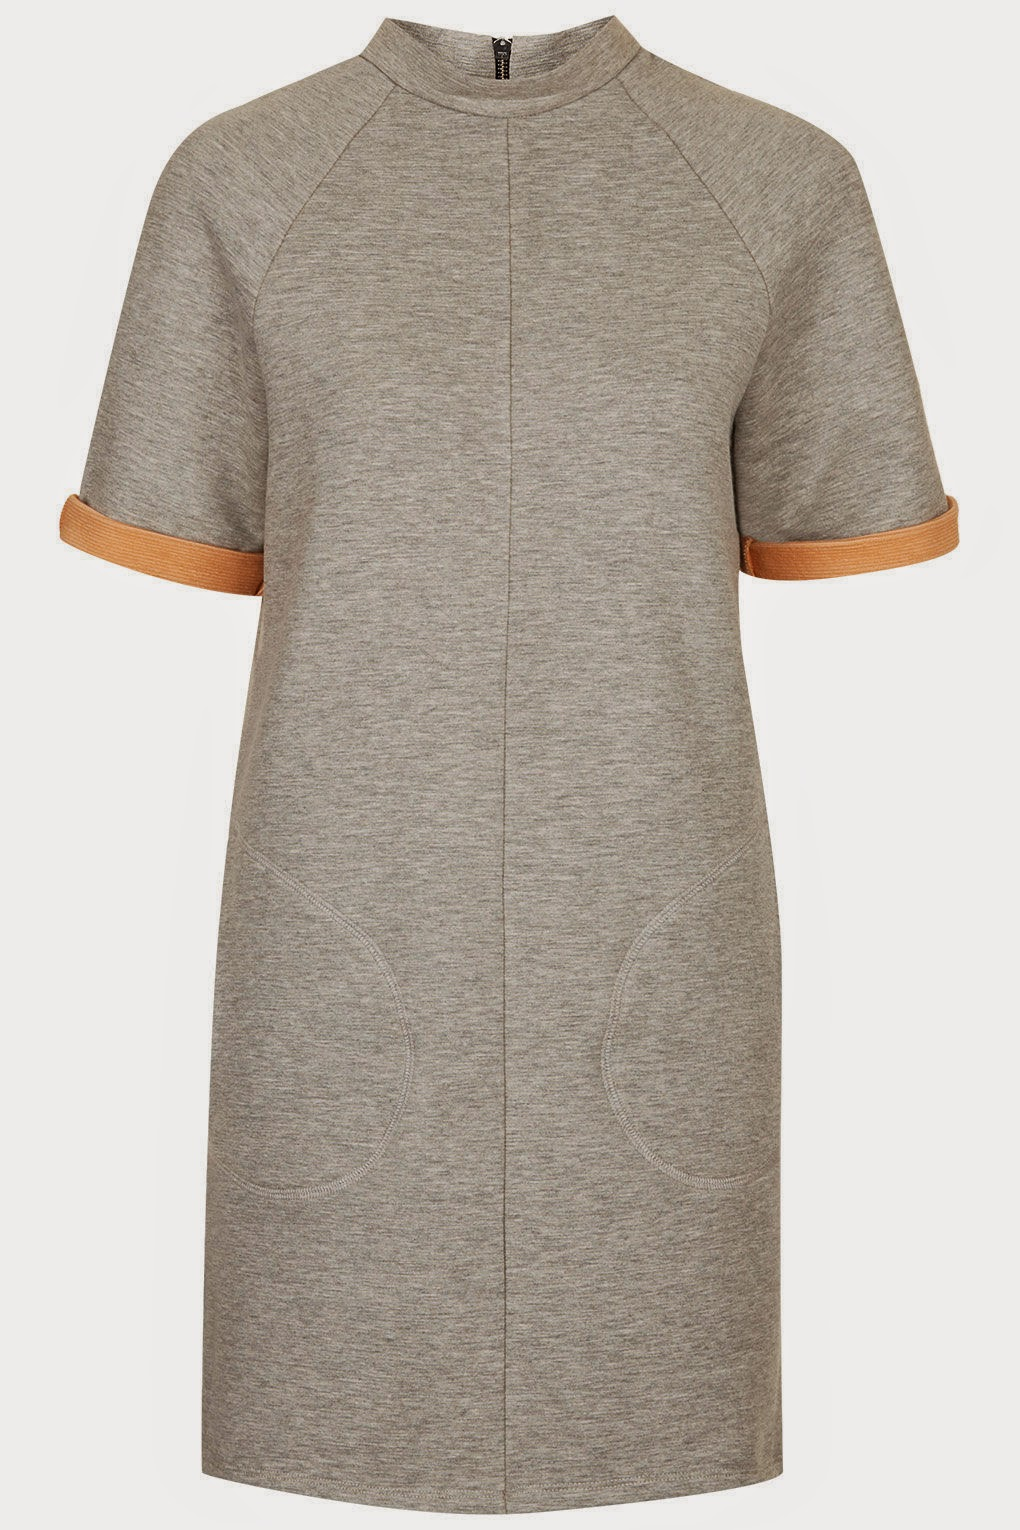 grey contrast sleeve dress